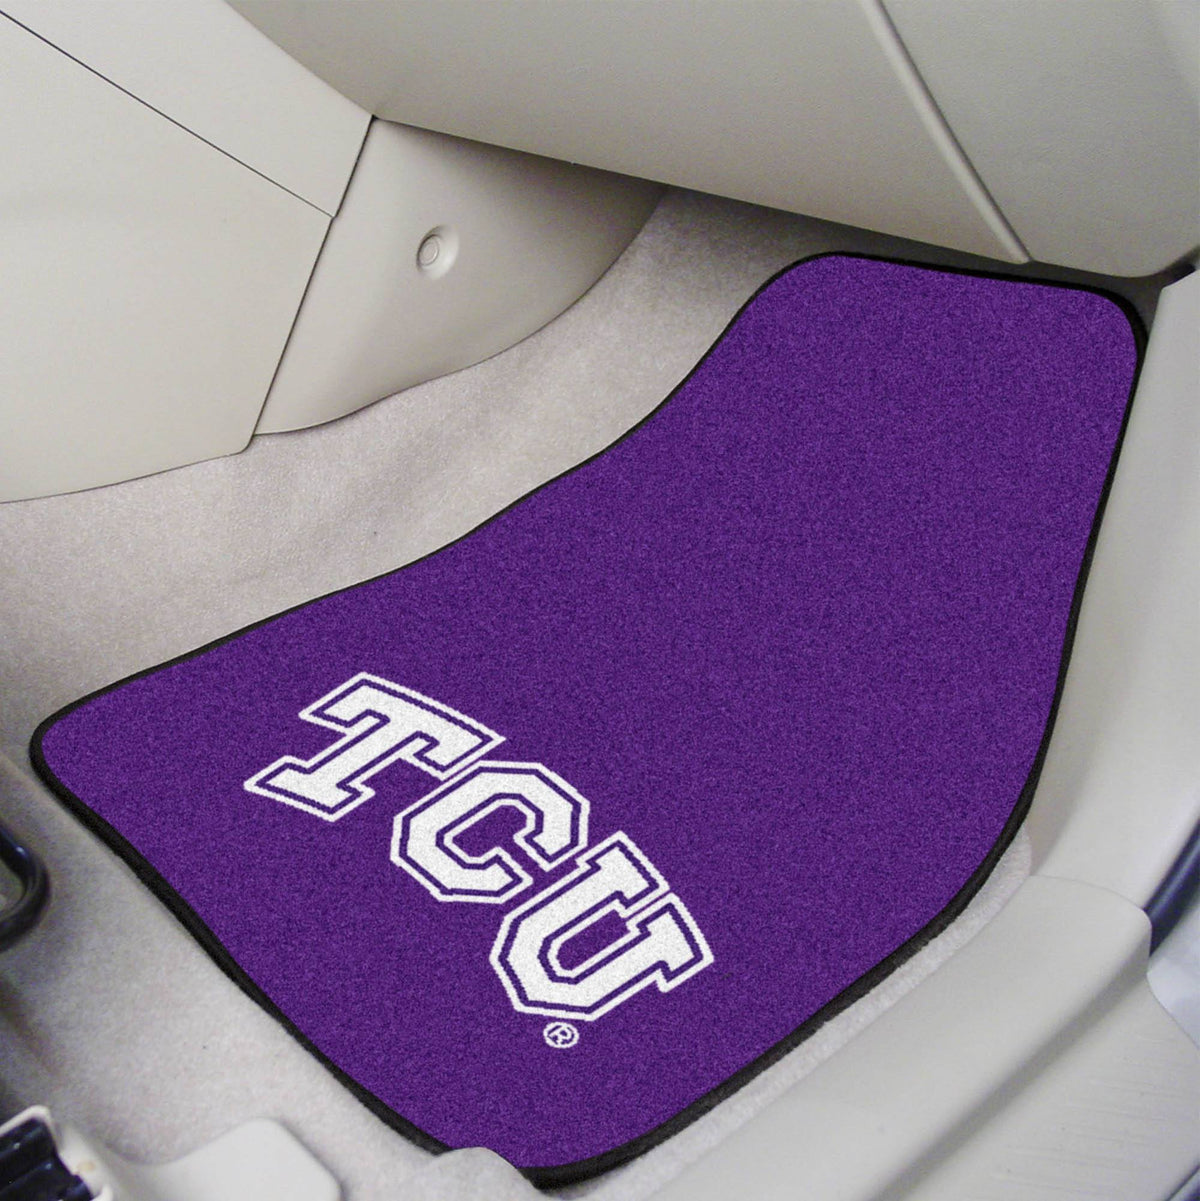 Collegiate - Carpet Car Mat, 2-Piece Set: T - Z Collegiate Car Mat, Front Car Mats, 2-pc Carpet Car Mat Set, Collegiate, Auto Fan Mats TCU